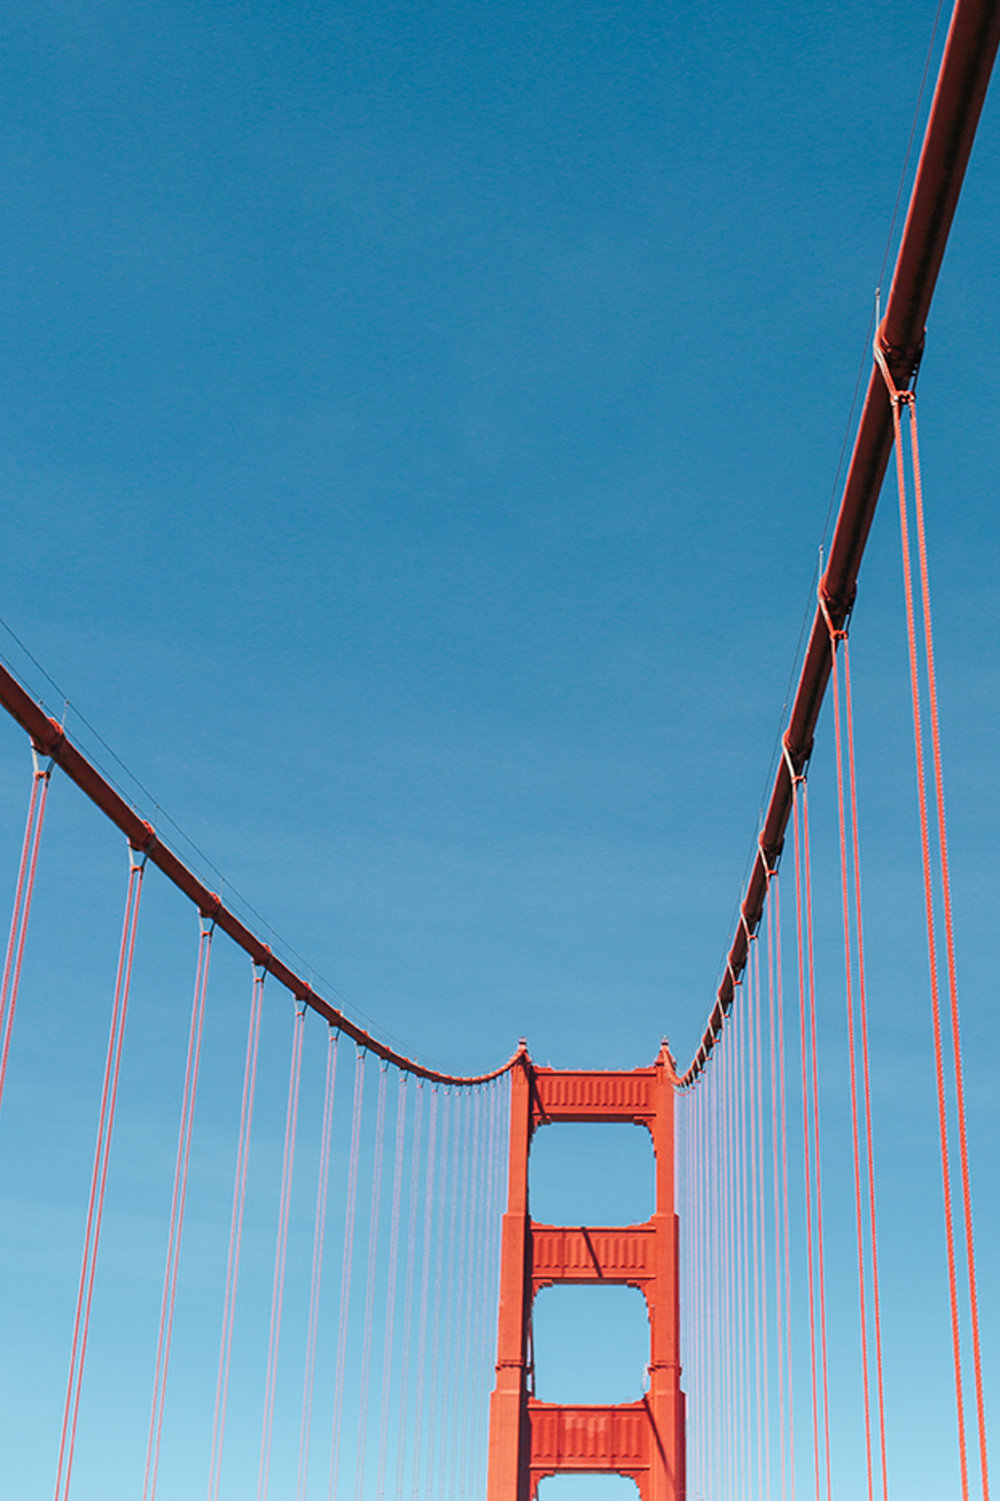 San Francisco, California // Travels